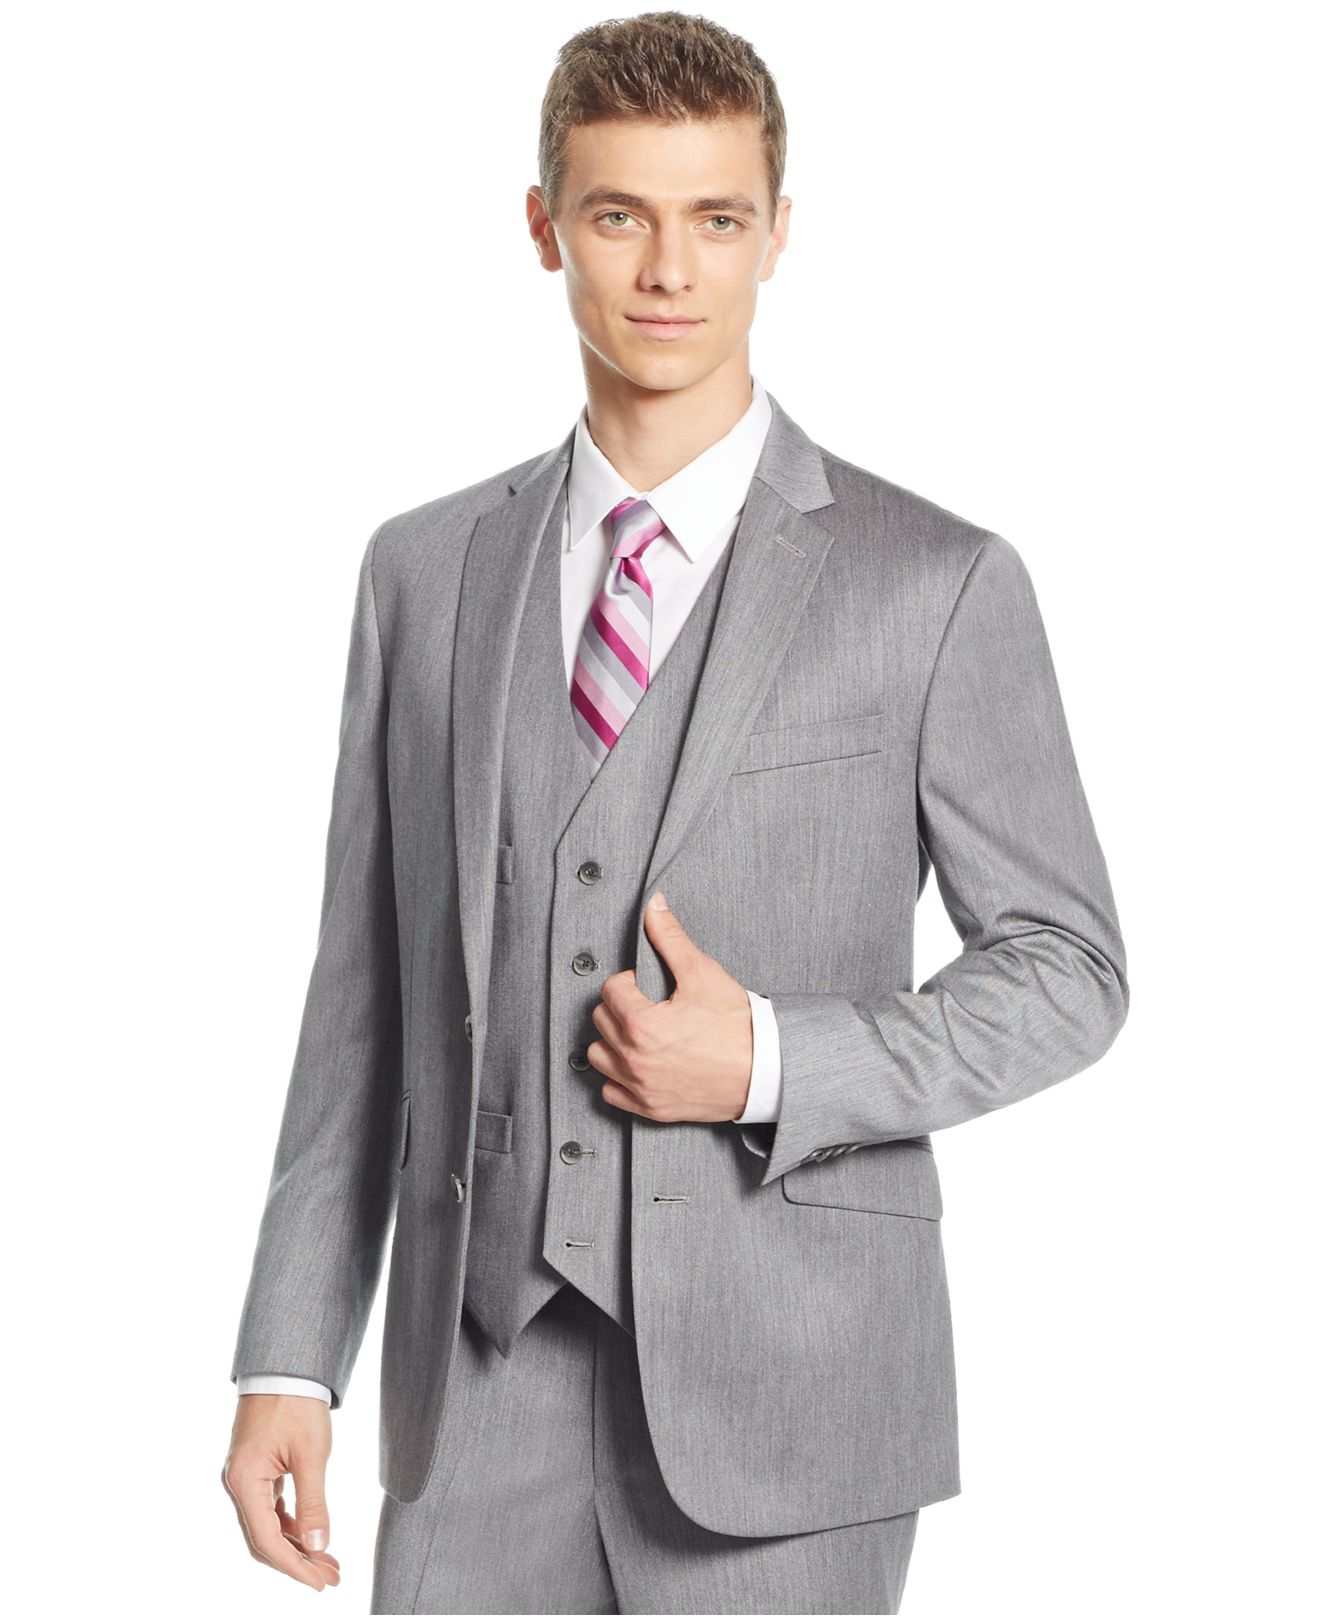 Lyst - Kenneth Cole Reaction Light Grey Sharkskin Slim-fit Vested ... a55e5cc62